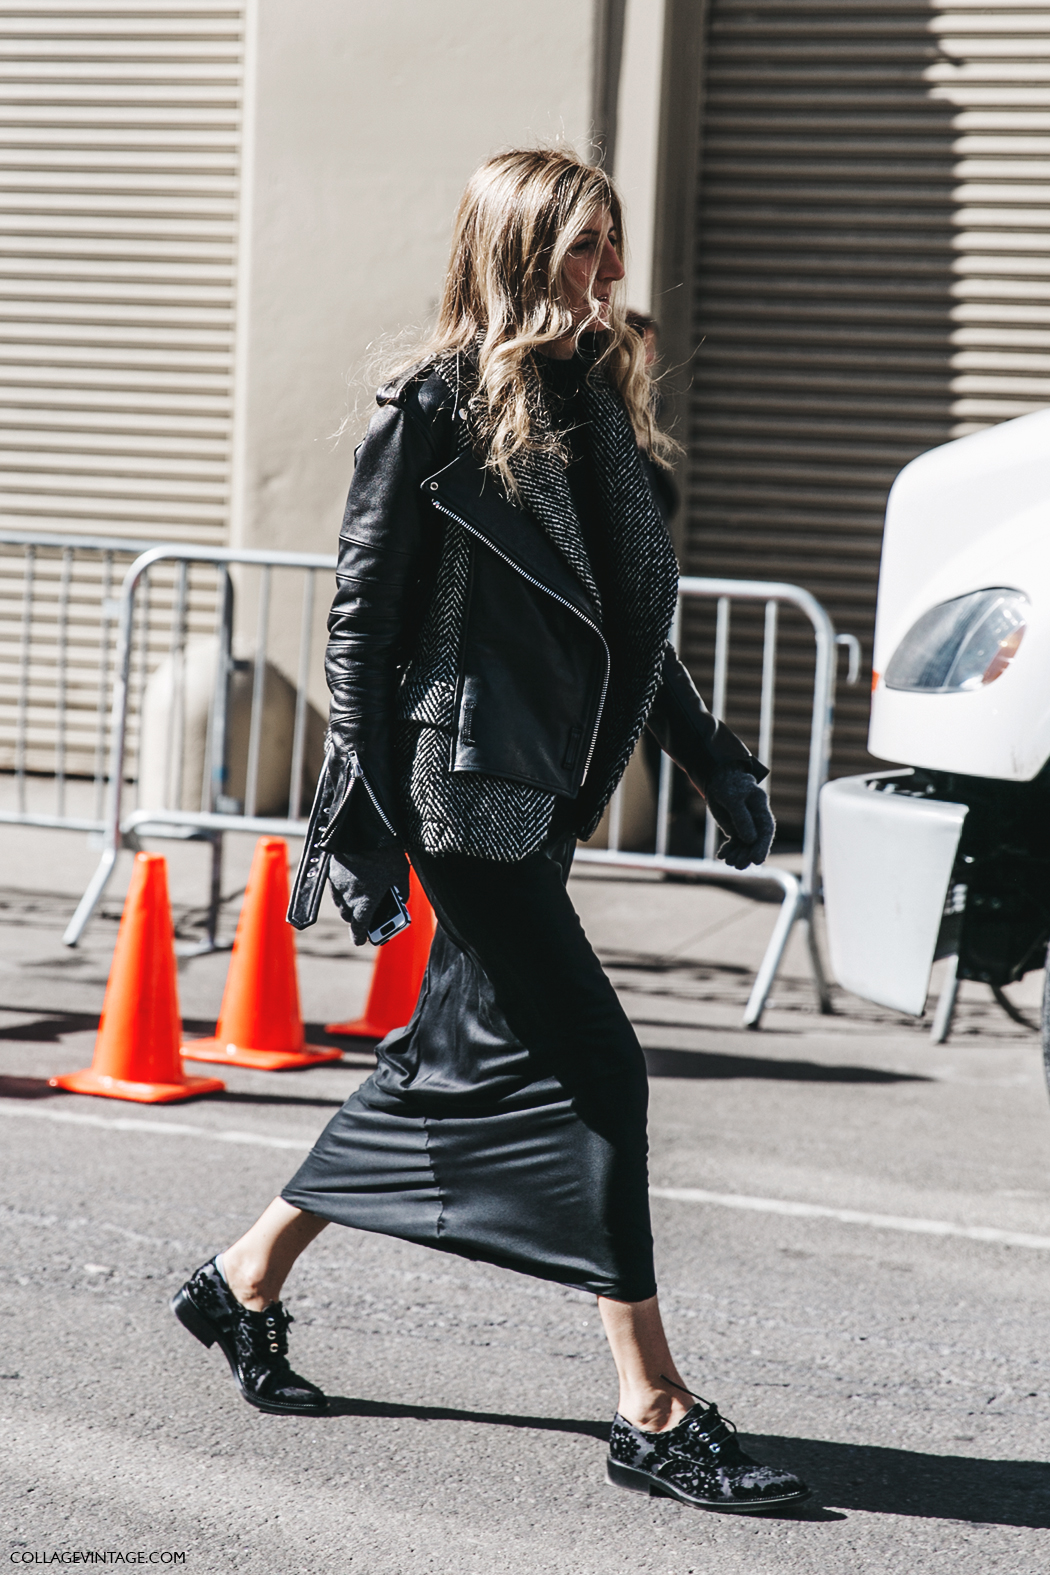 NYFW-New_York_Fashion_Week-Fall_Winter-17-Street_Style-Sarah_Ruston-Pencil_Skirt-Loafers-